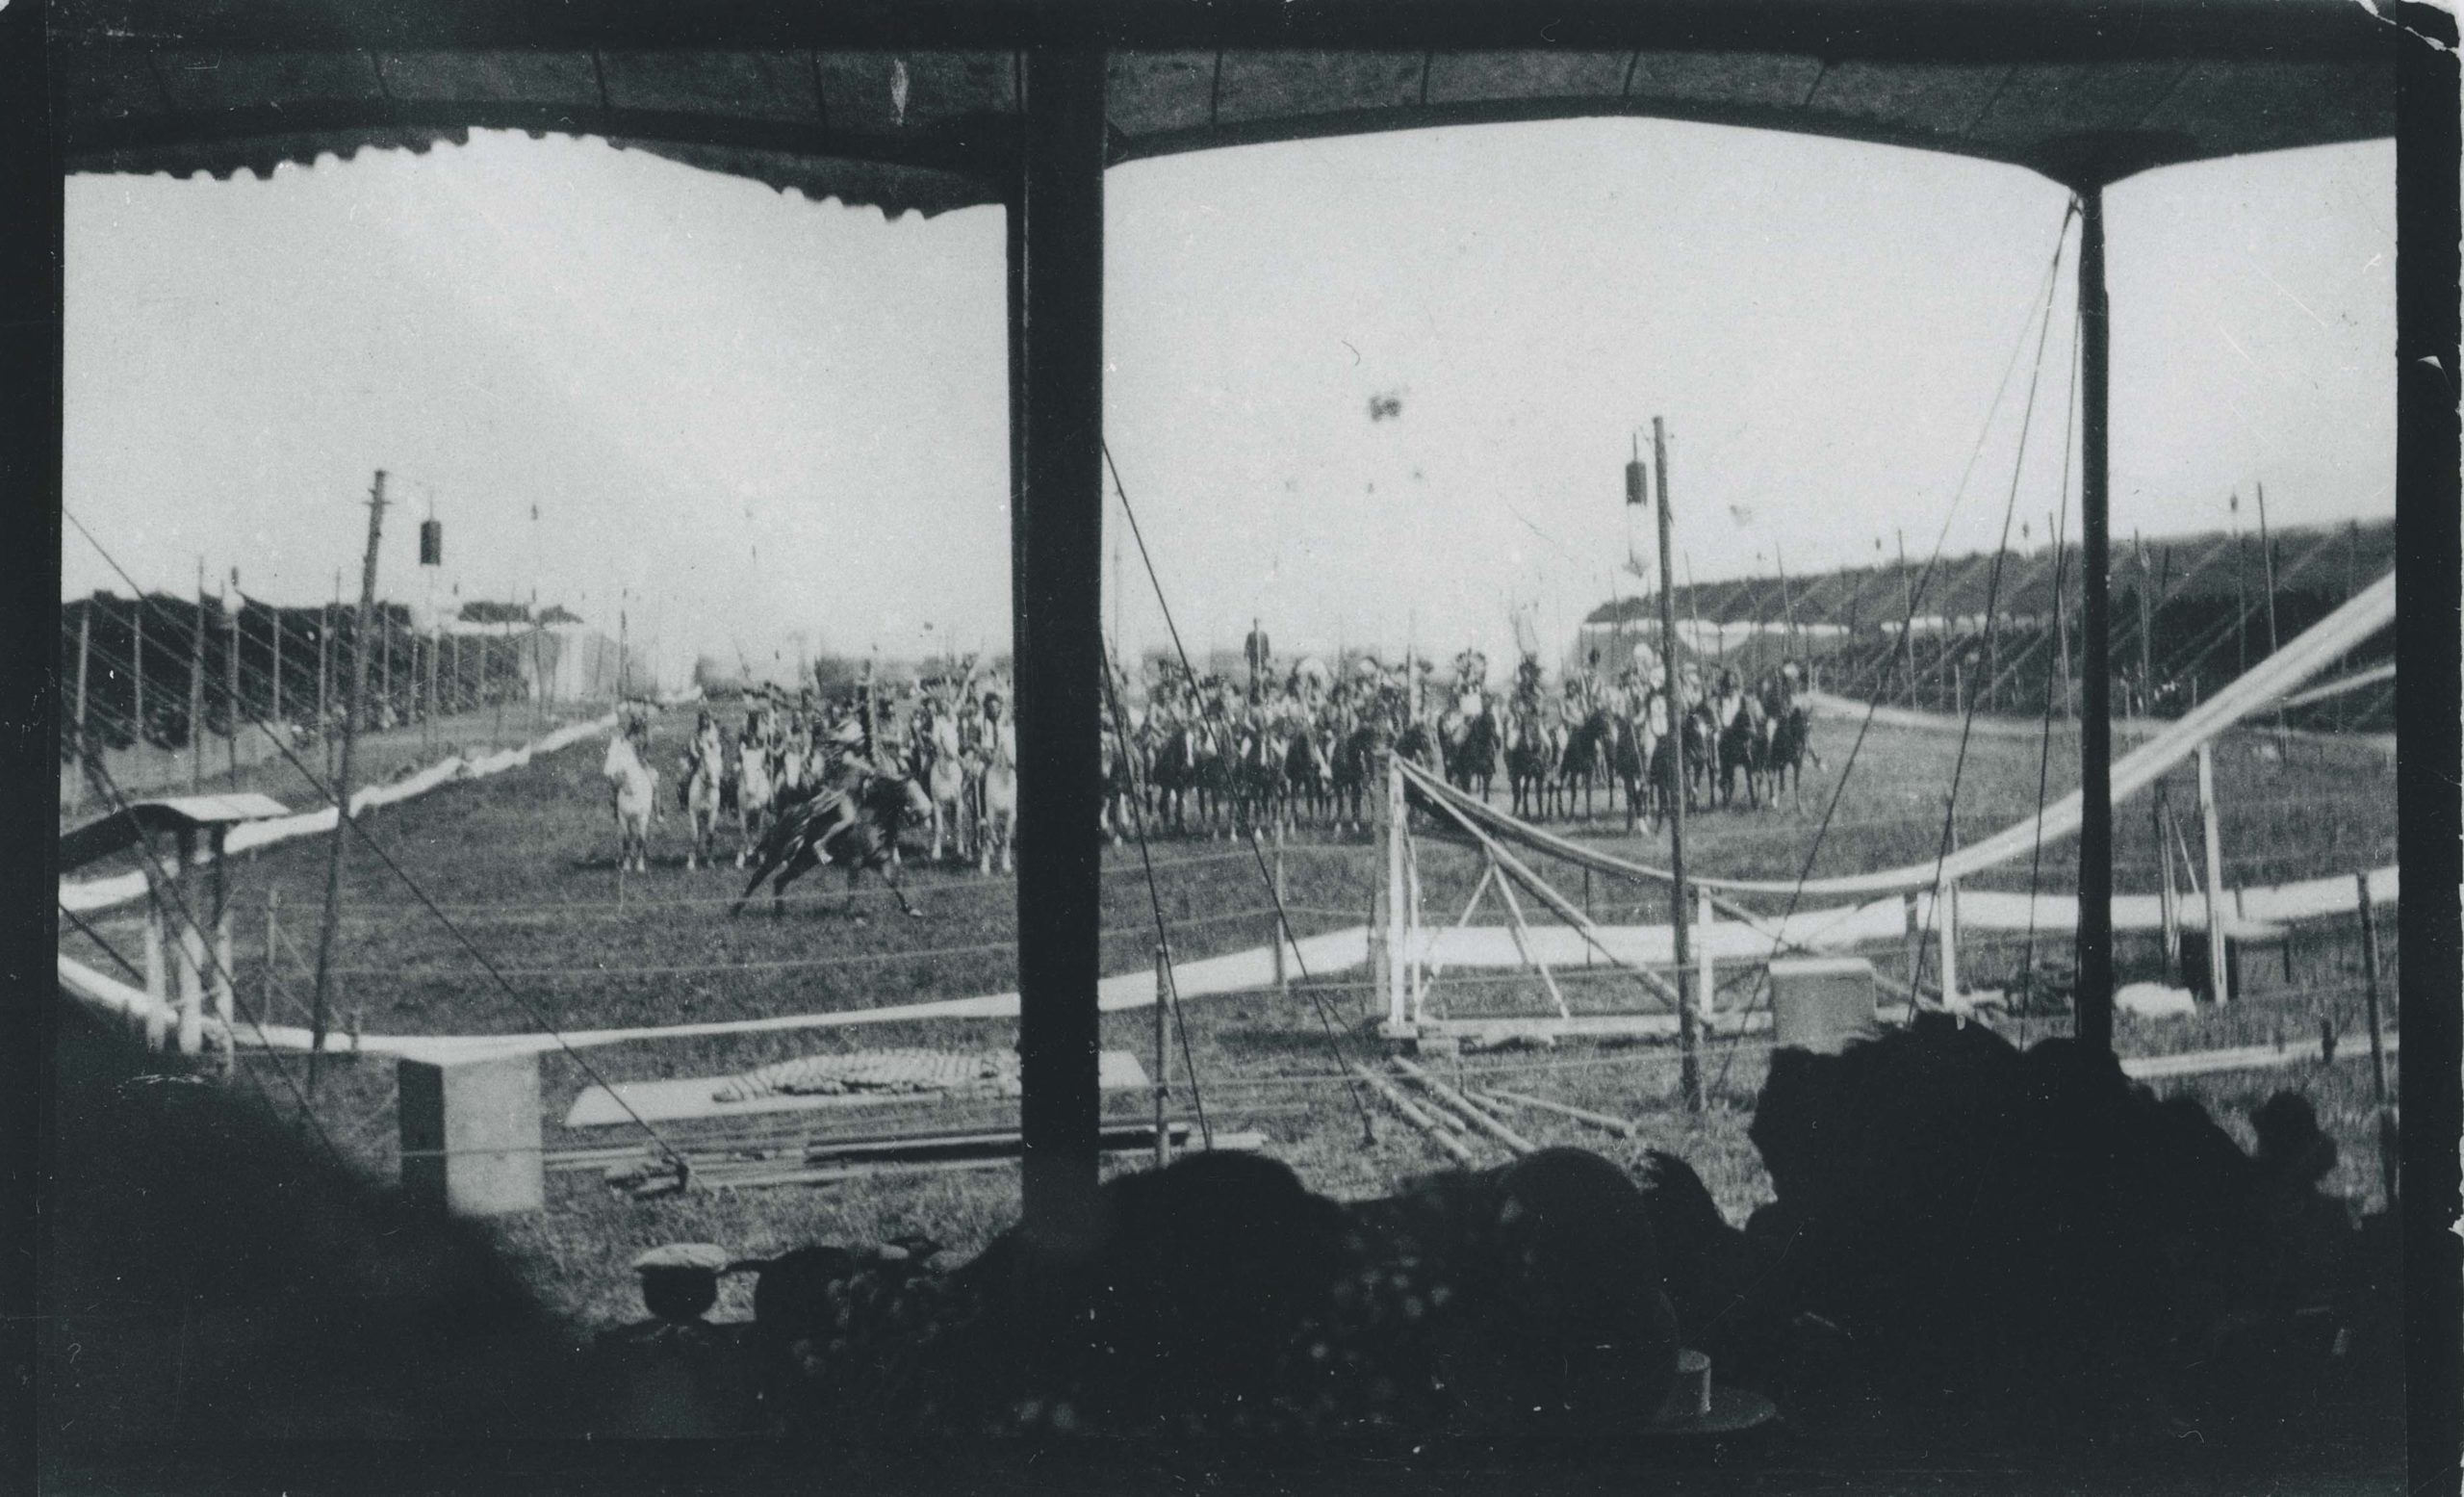 Photograph of a Wild West Show.